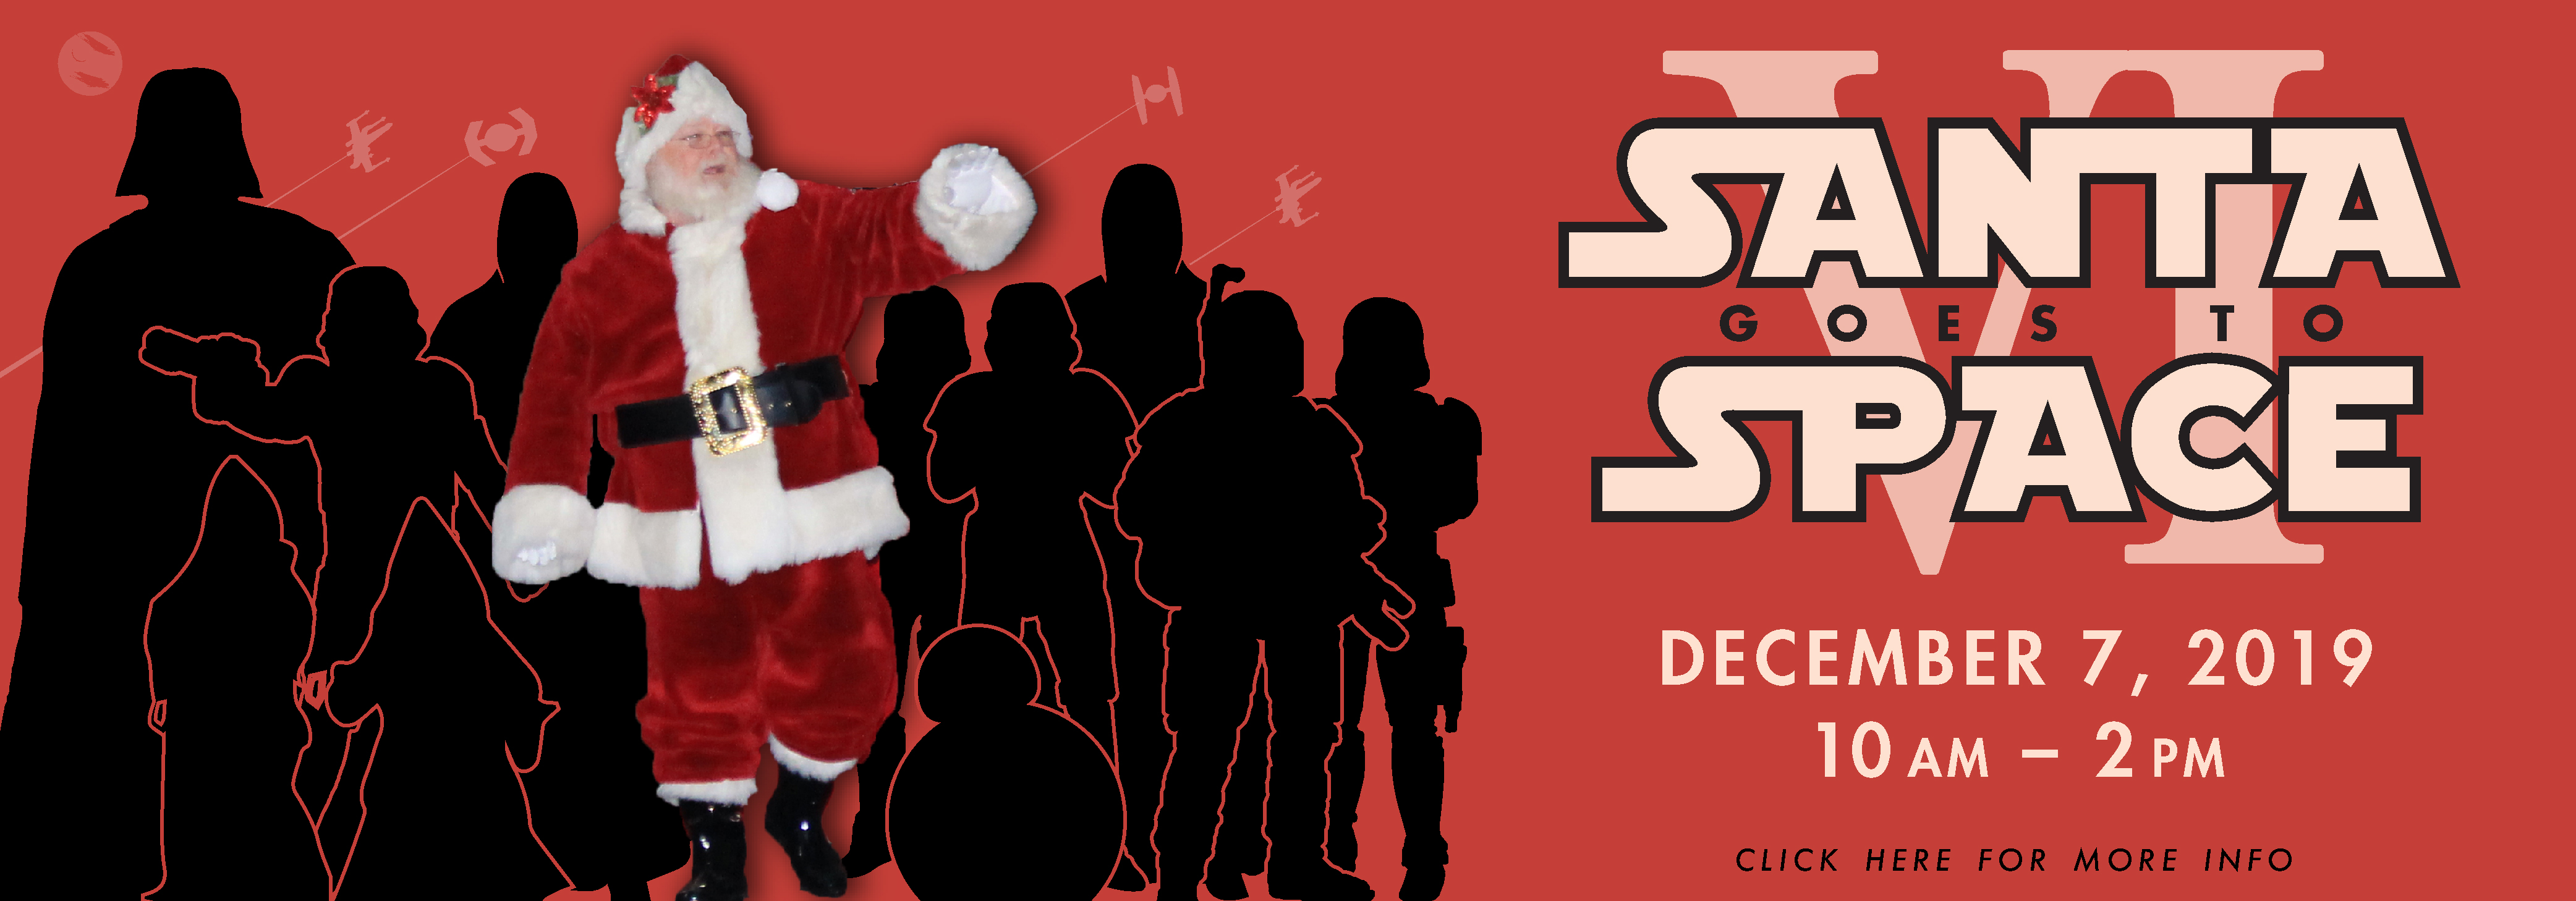 santa with star wars characters